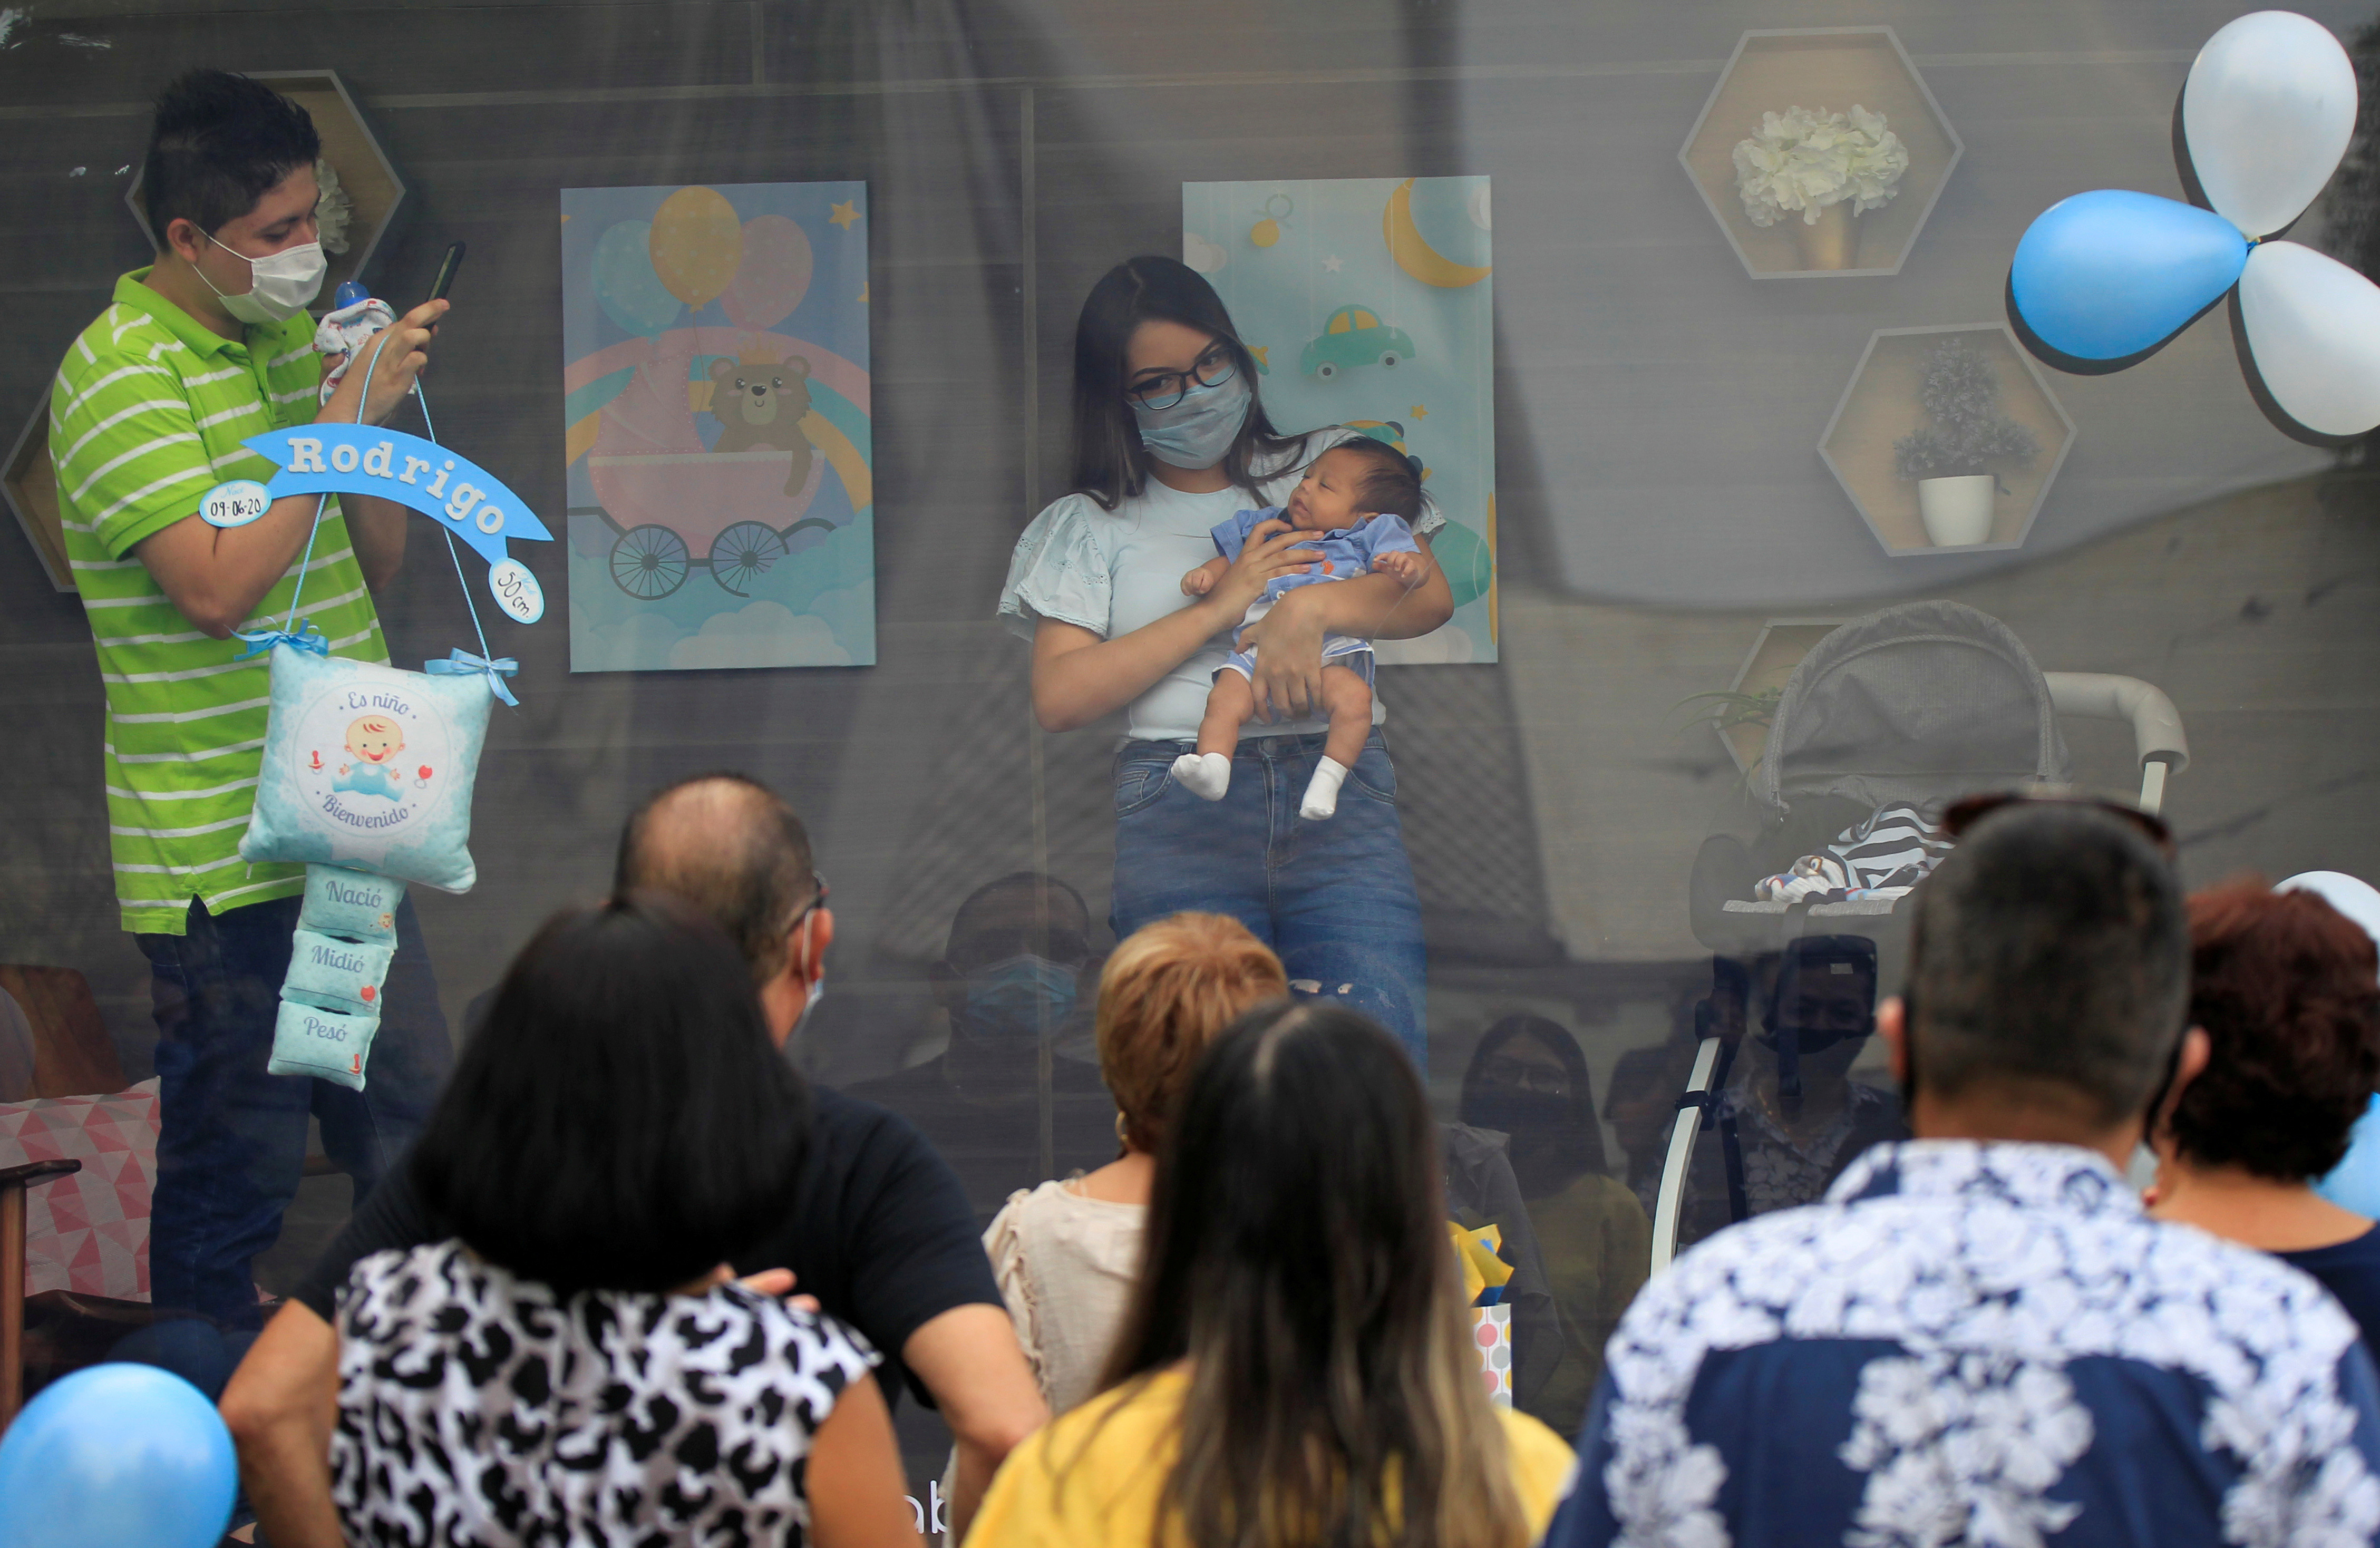 """A couple is seen with their newborn baby inside a sanitized cabin called """"Baby Cabin Parade"""" to show the newborn to relatives as a social distancing solution during the coronavirus disease (COVID-19) outbreak in Monterrey, Mexico July 31, 2020. Picture taken July 31, 2020. REUTERS/Daniel Becerril     TPX IMAGES OF THE DAY - RC2B5I9WR6QO"""